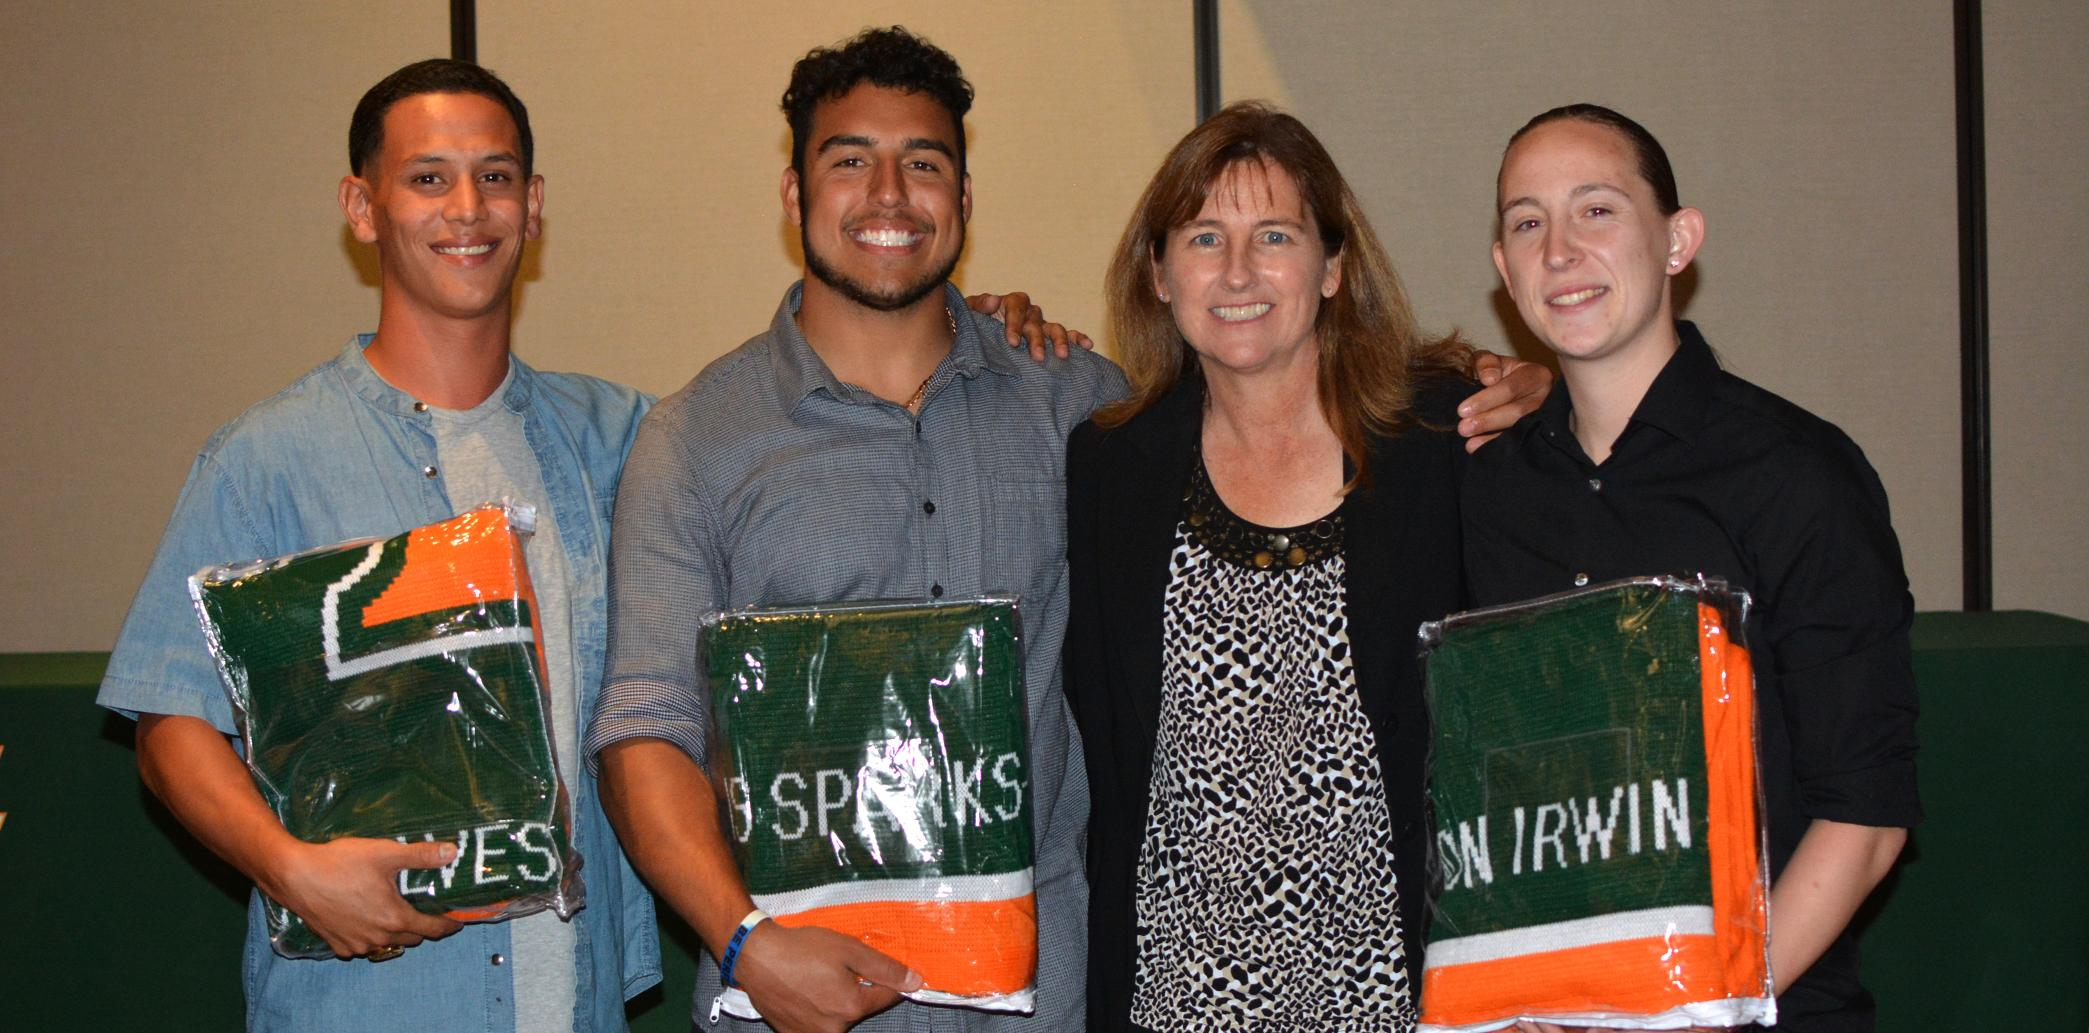 La Verne honors 62 seniors at 2016 Senior Blanket Awards